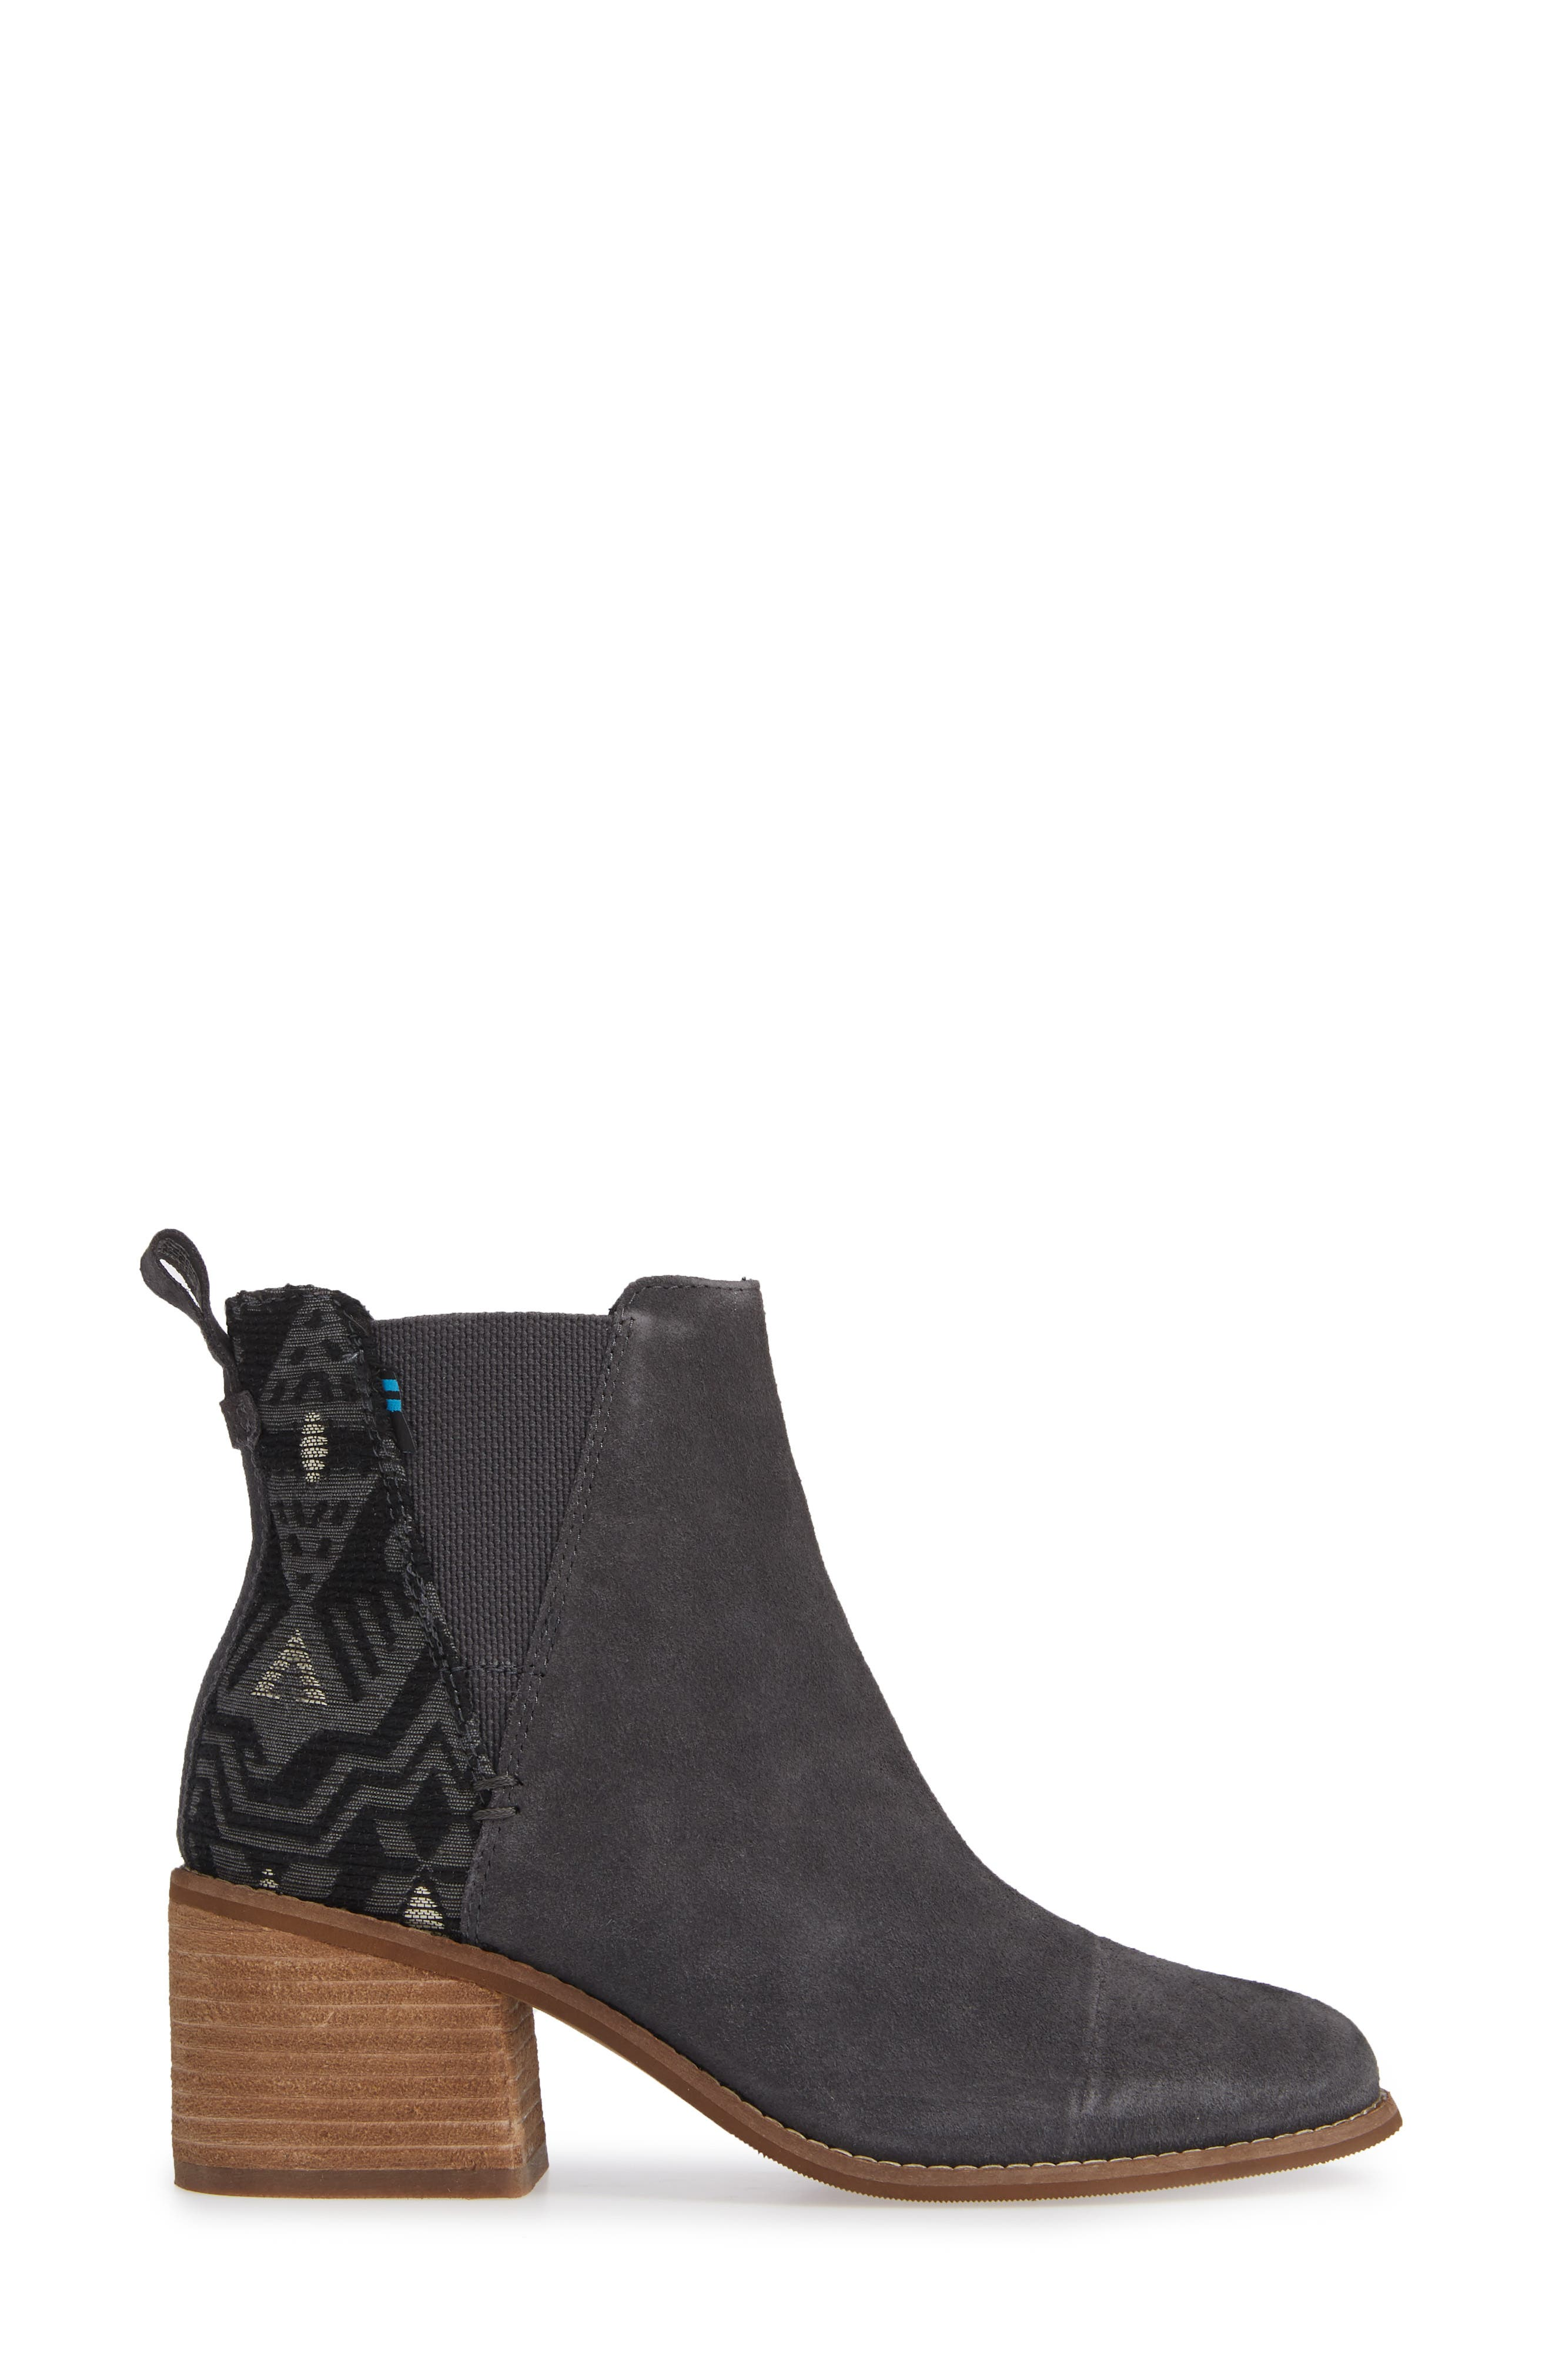 Esme Bootie,                             Alternate thumbnail 3, color,                             FORGED IRON SUEDE